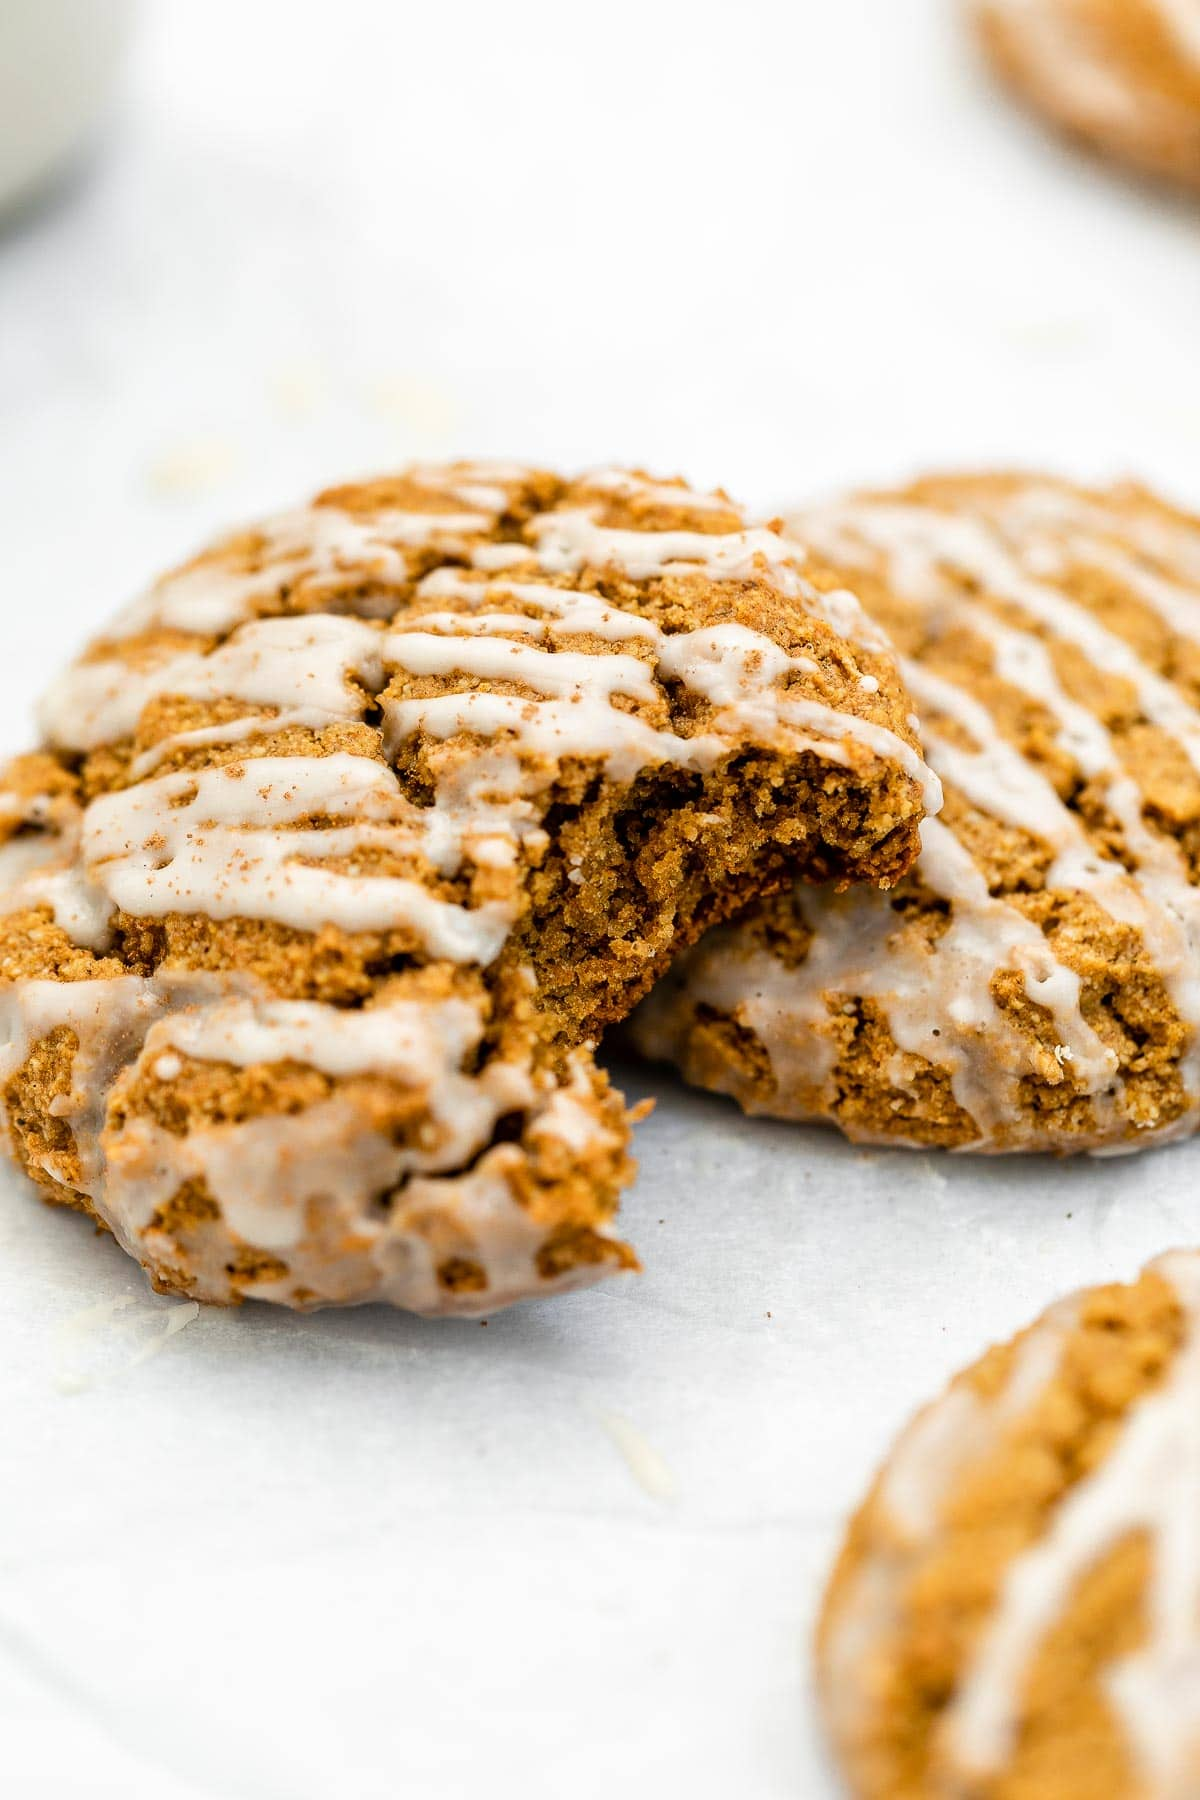 Two vegan pumpkin cookies on the side with a bite taken out.